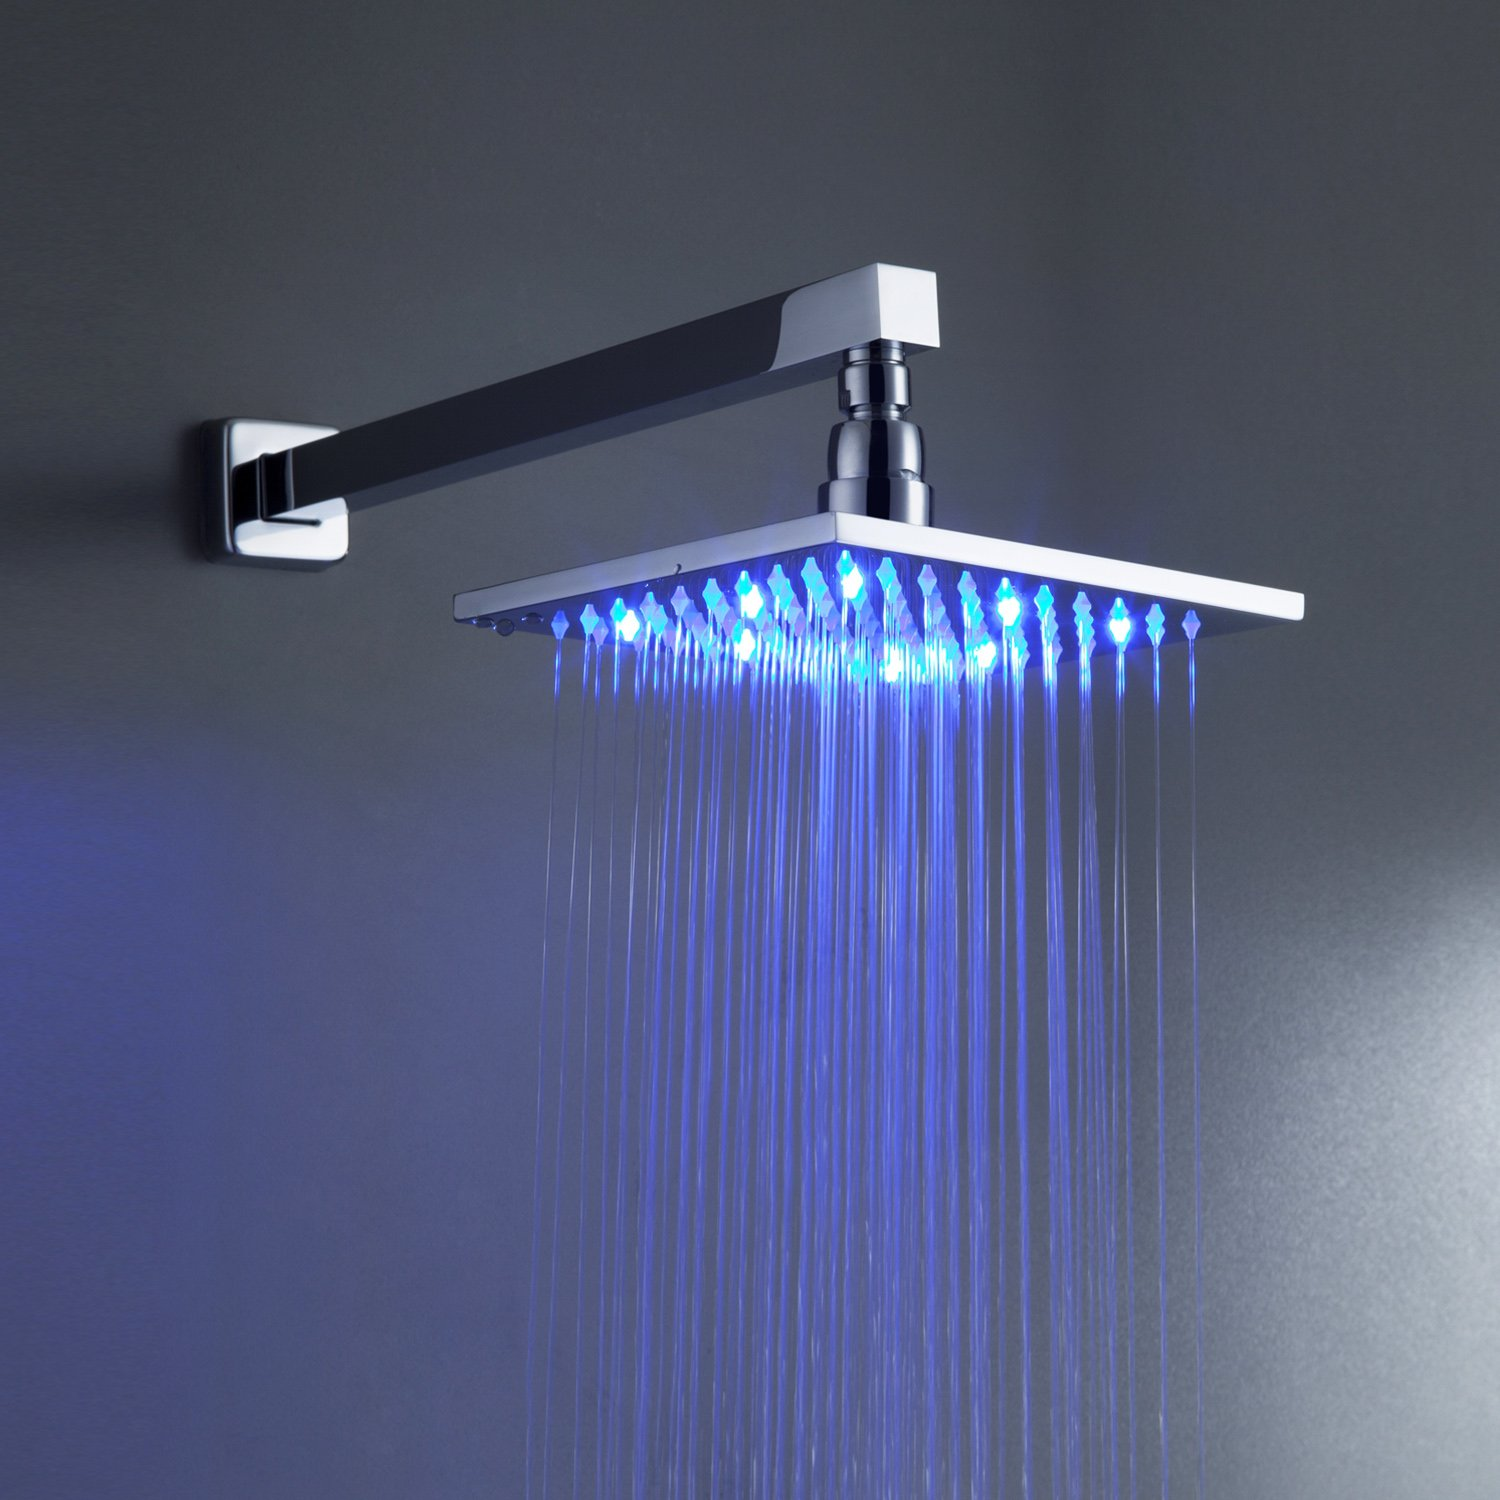 sprinkle color changing led shower faucet with wall mount square   - sprinkle color changing led shower faucet with wall mount square  inchfixed shower head handheld shower system arm and holder single handlelavatory